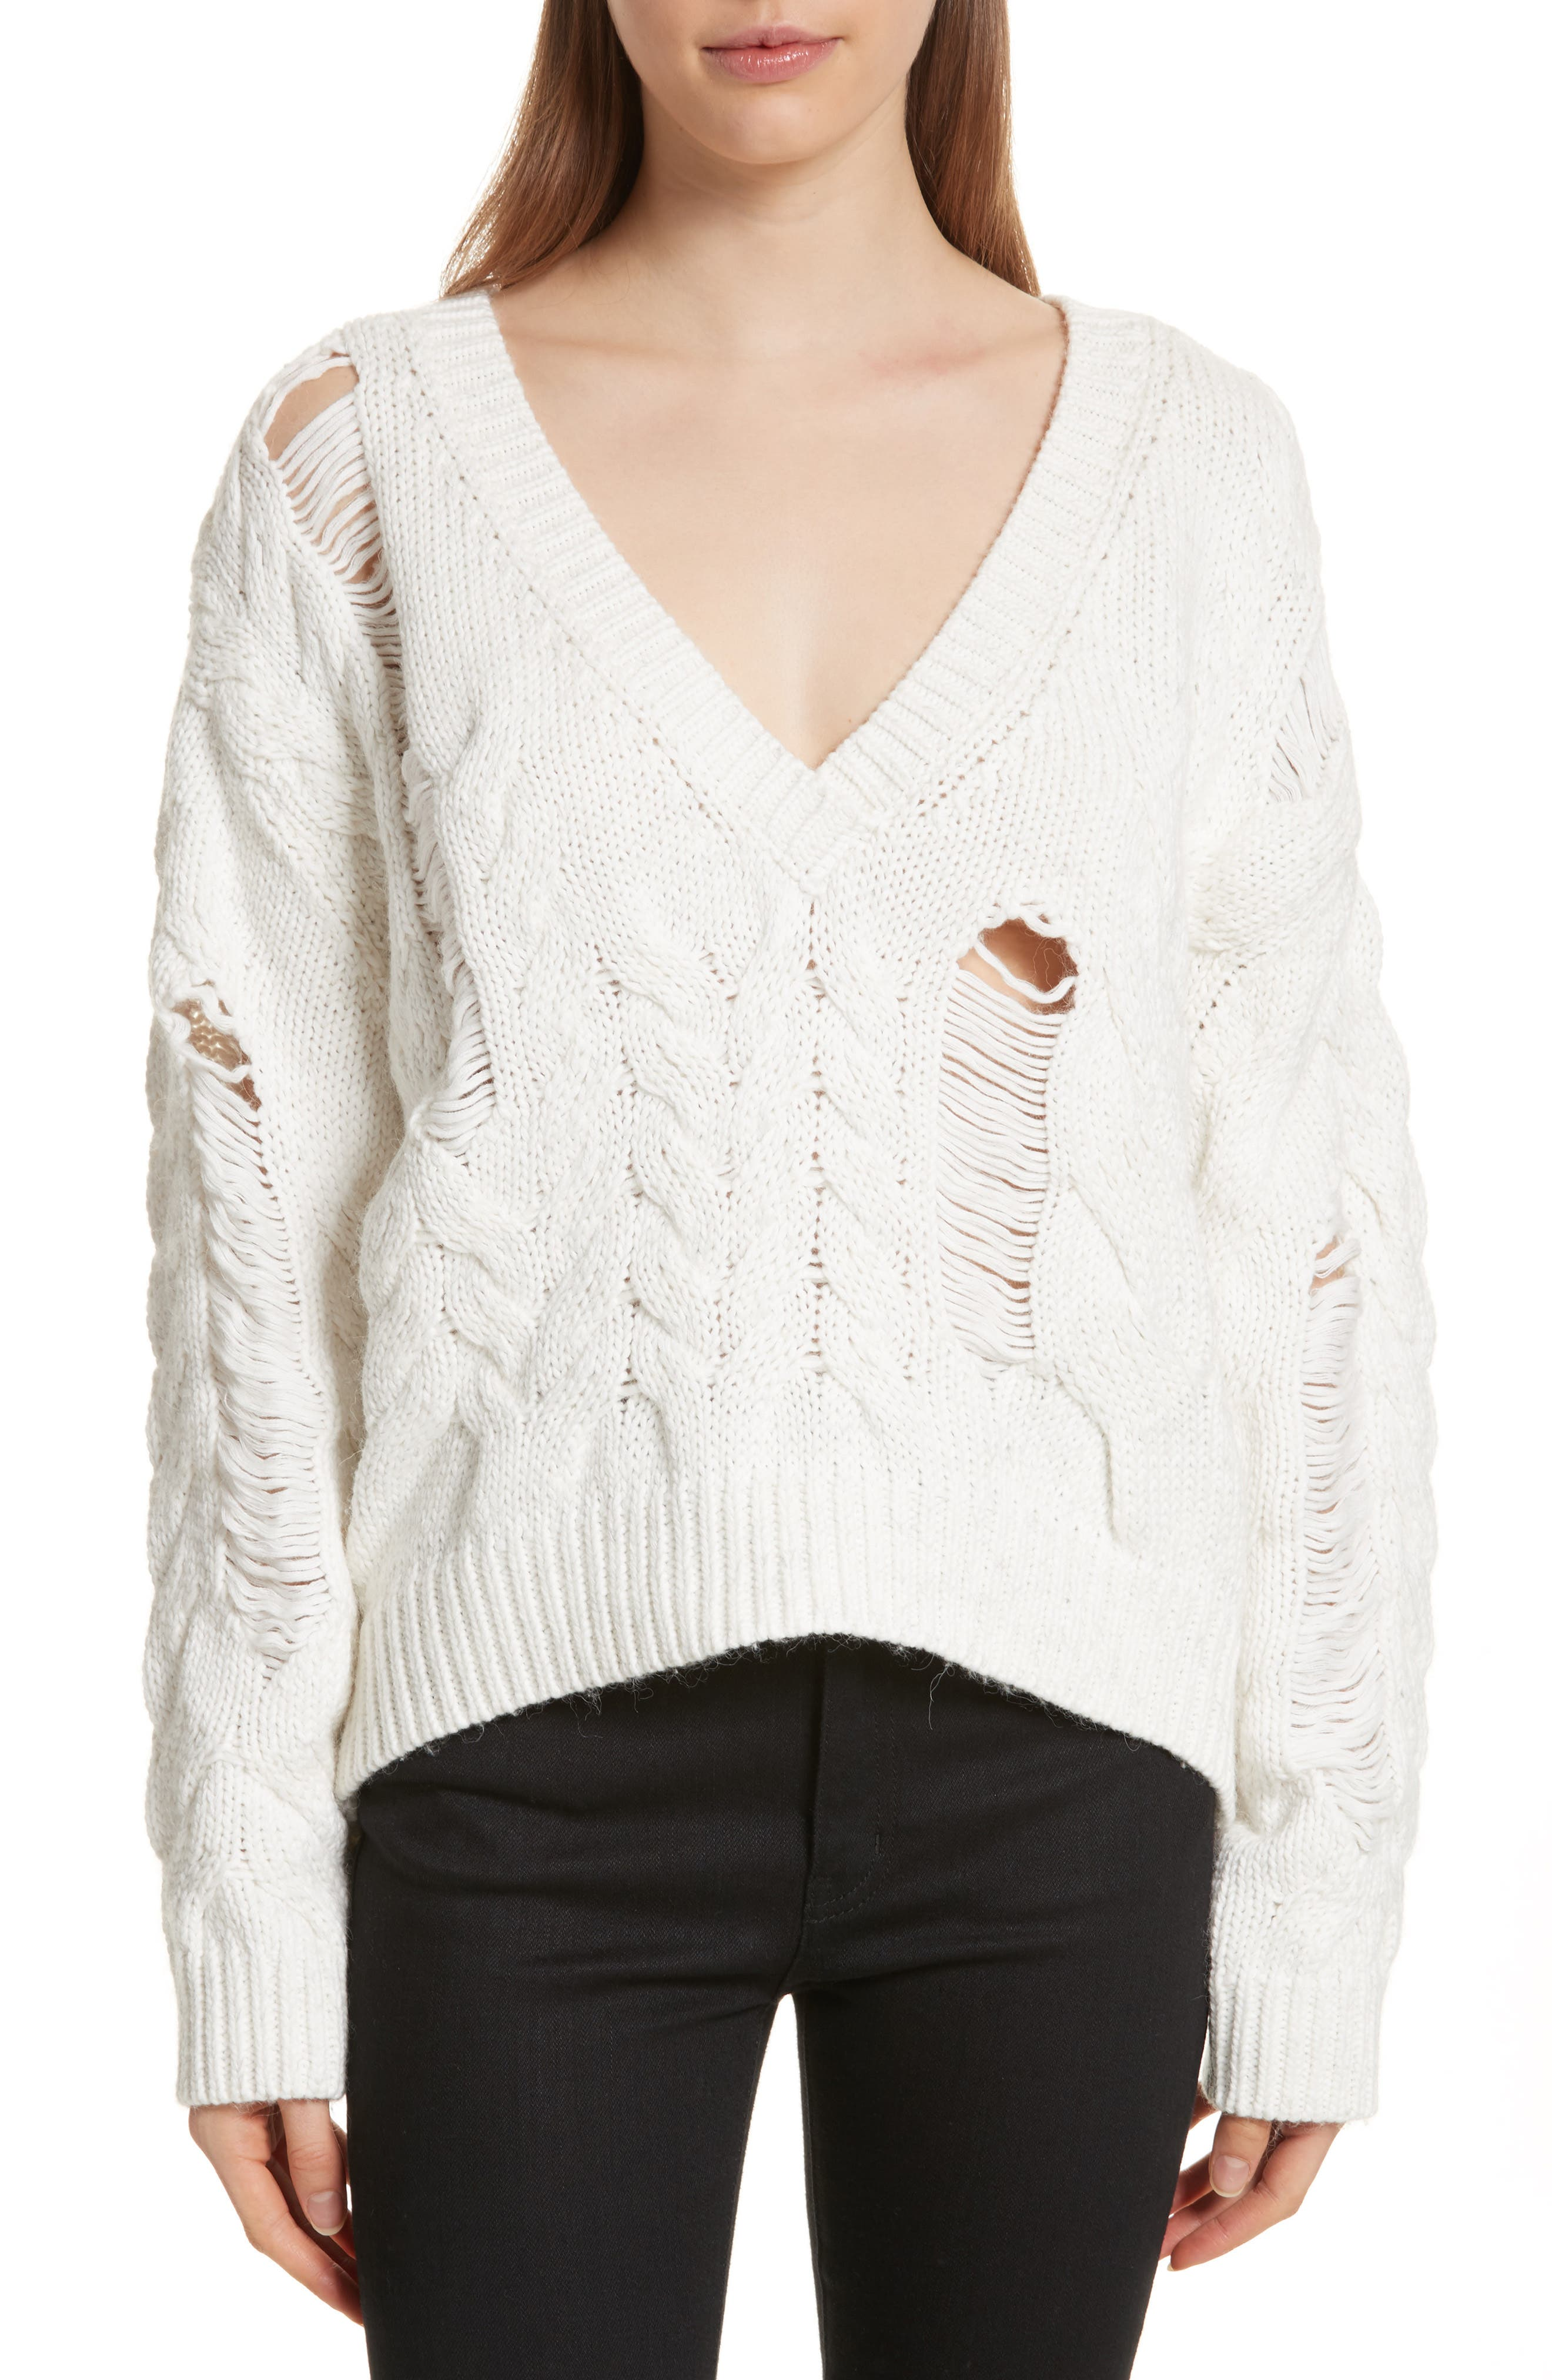 Fighla Distressed Sweater,                             Main thumbnail 1, color,                             Ecru